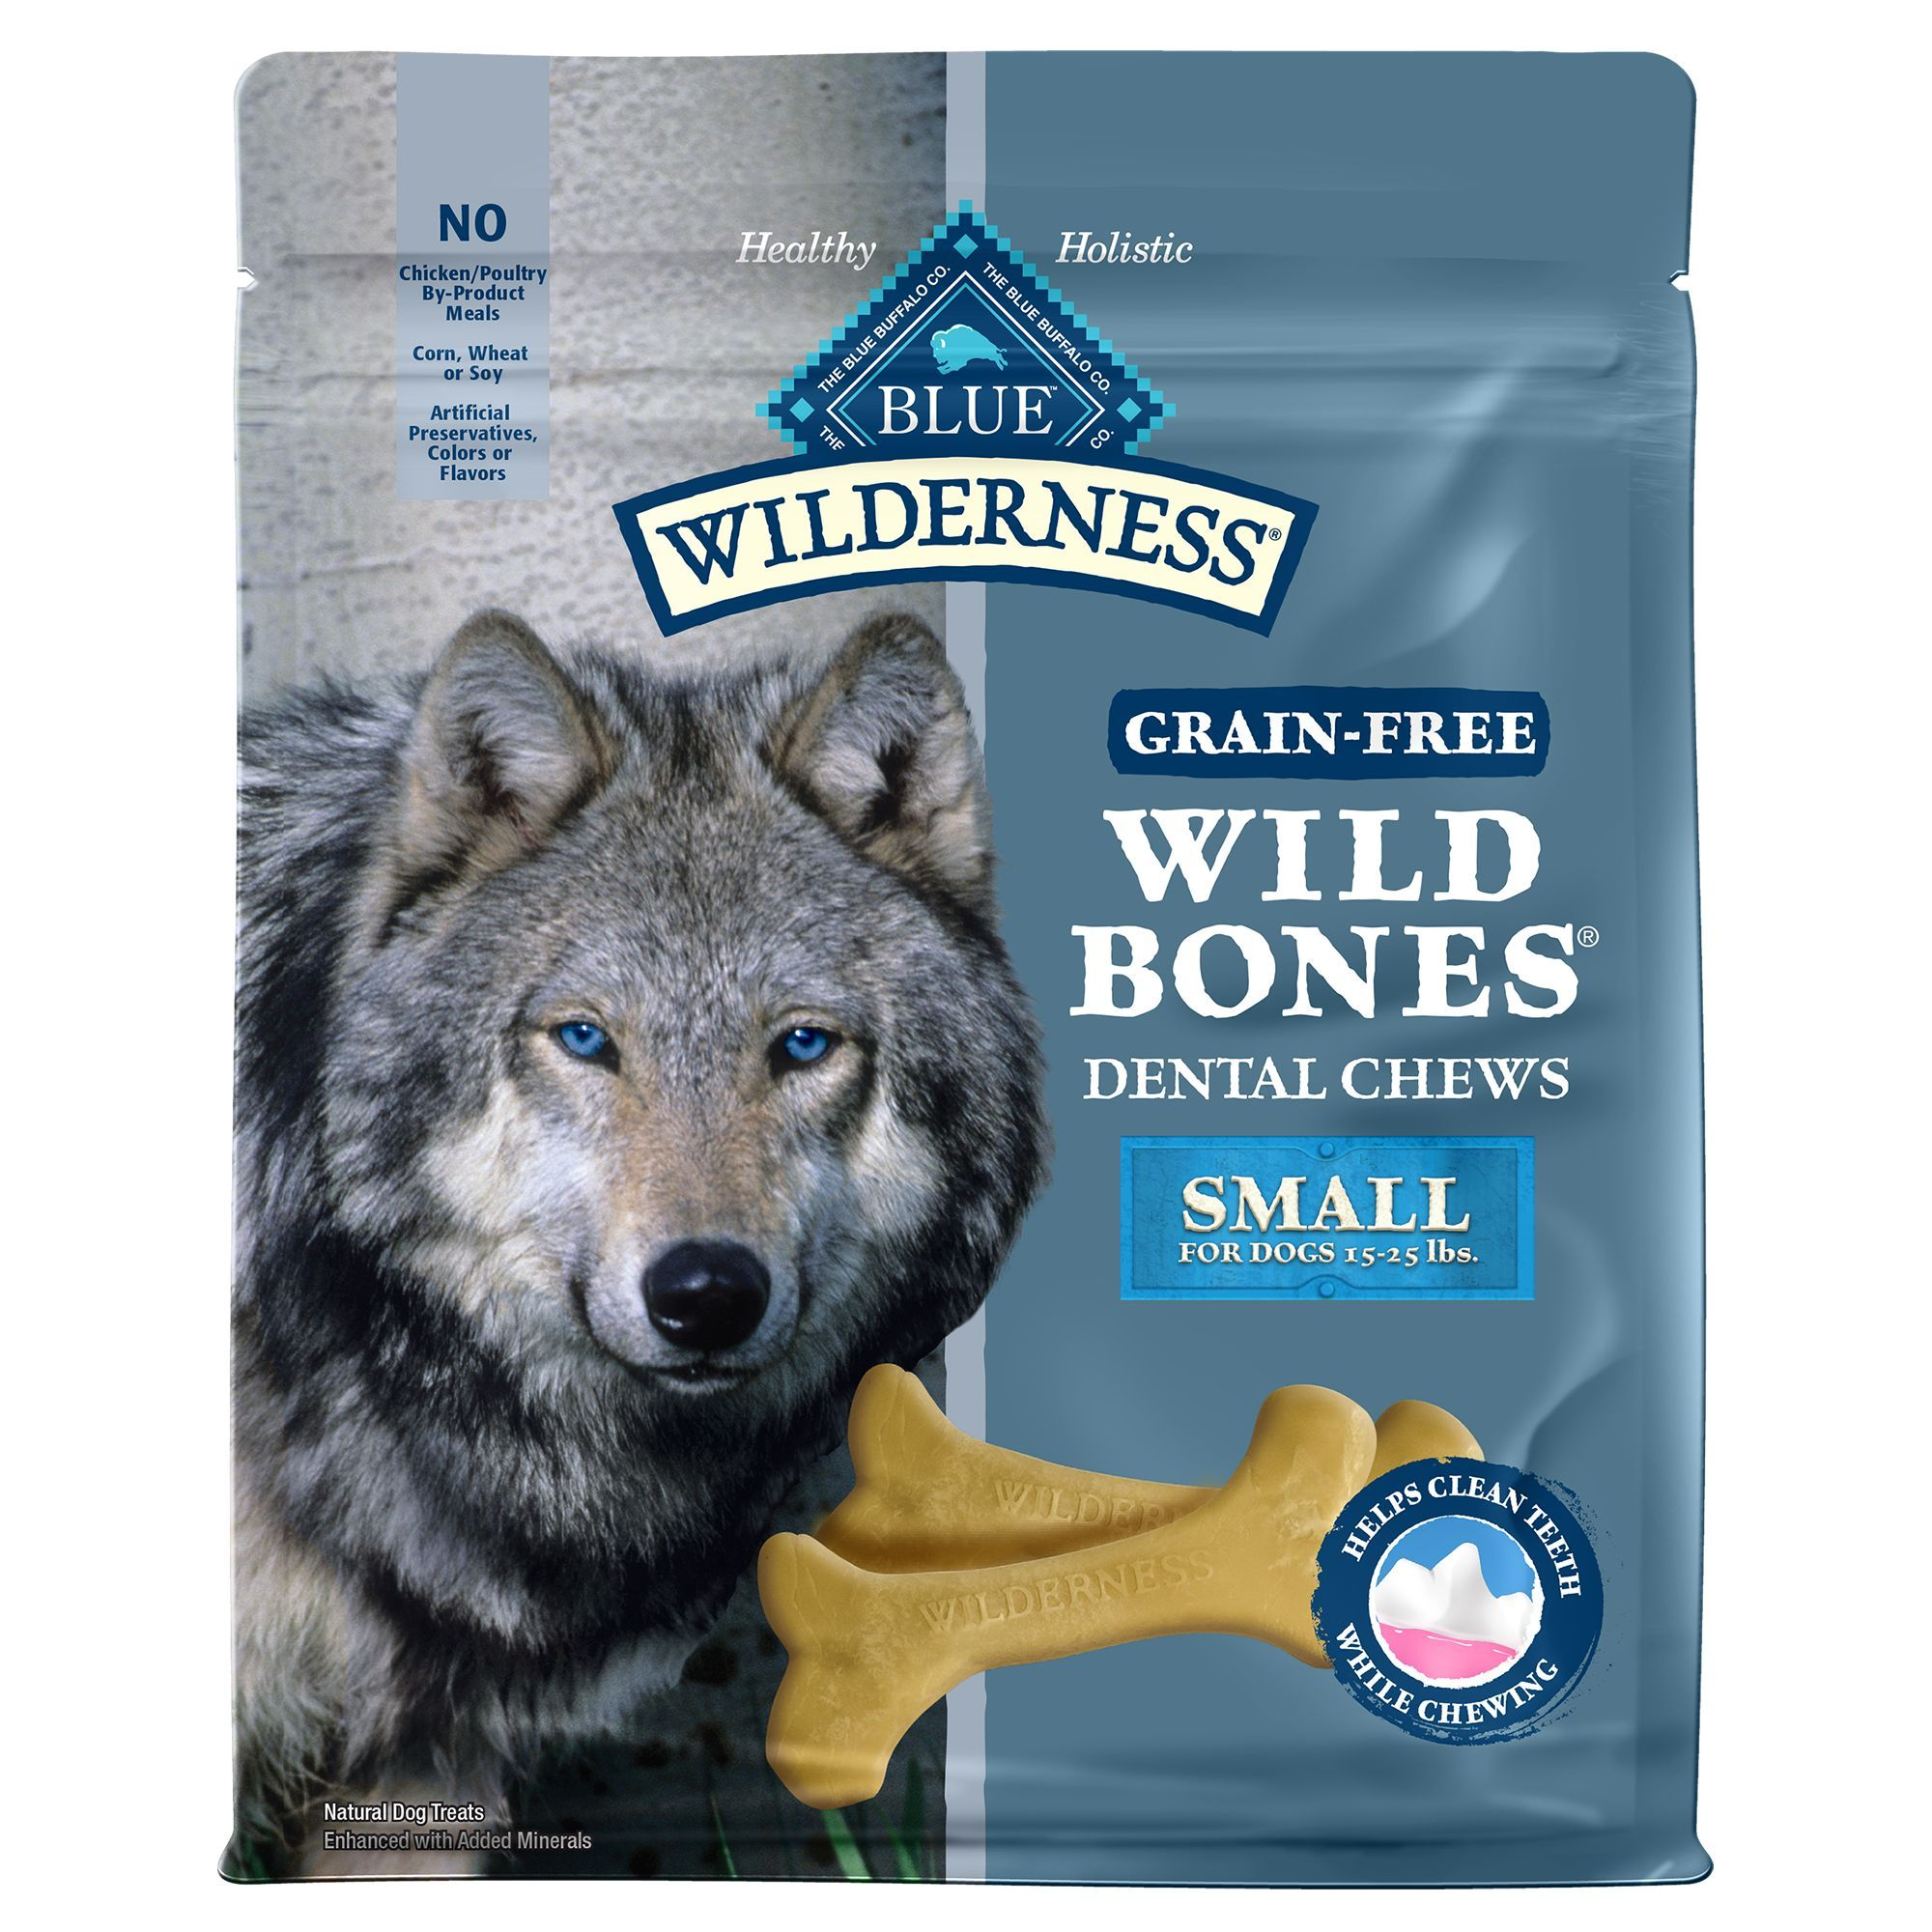 Blue Buffalo Wilderness Wild Bones Dental Small Dog Chews